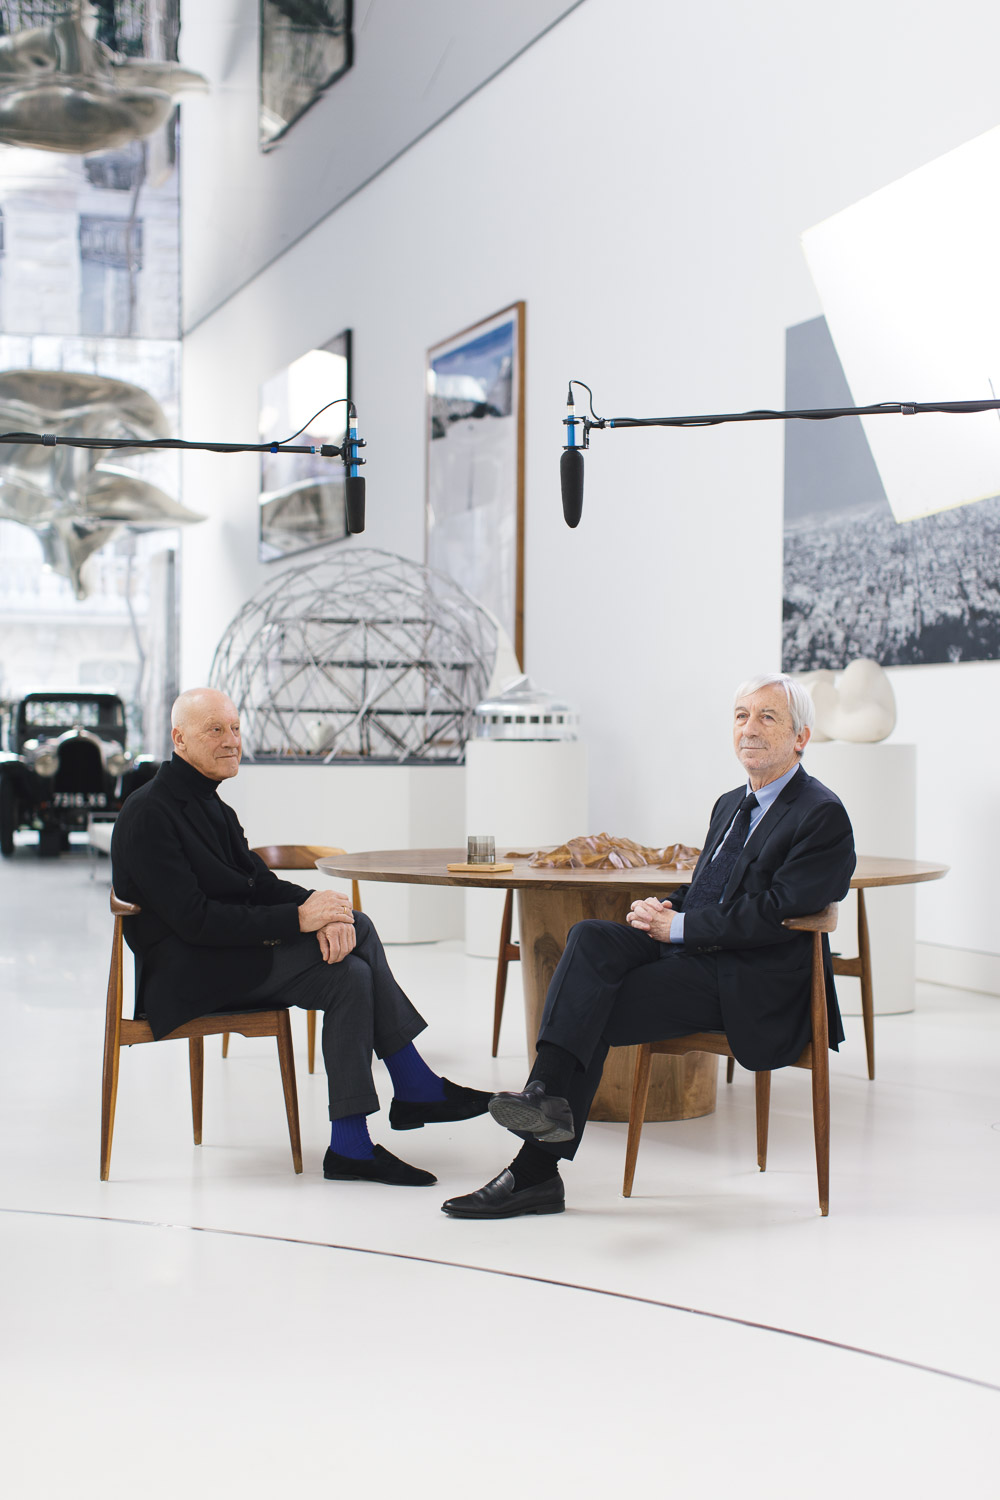 FOLCH - Norman Foster: The Maestros Series